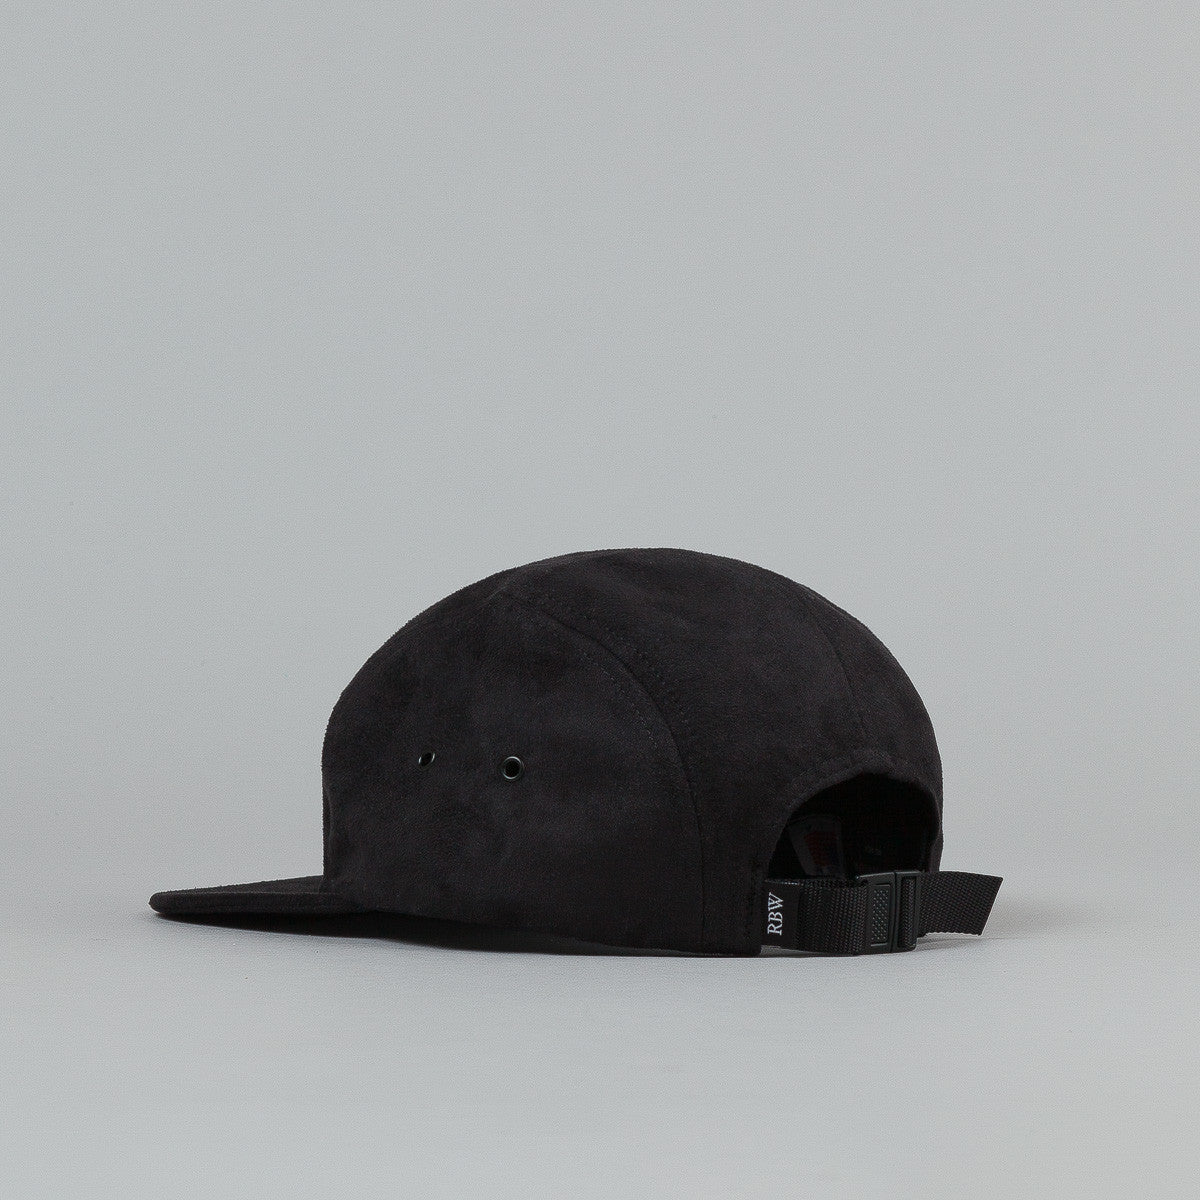 Raised By Wolves Algonquin Camp Cap - Black Microsuede